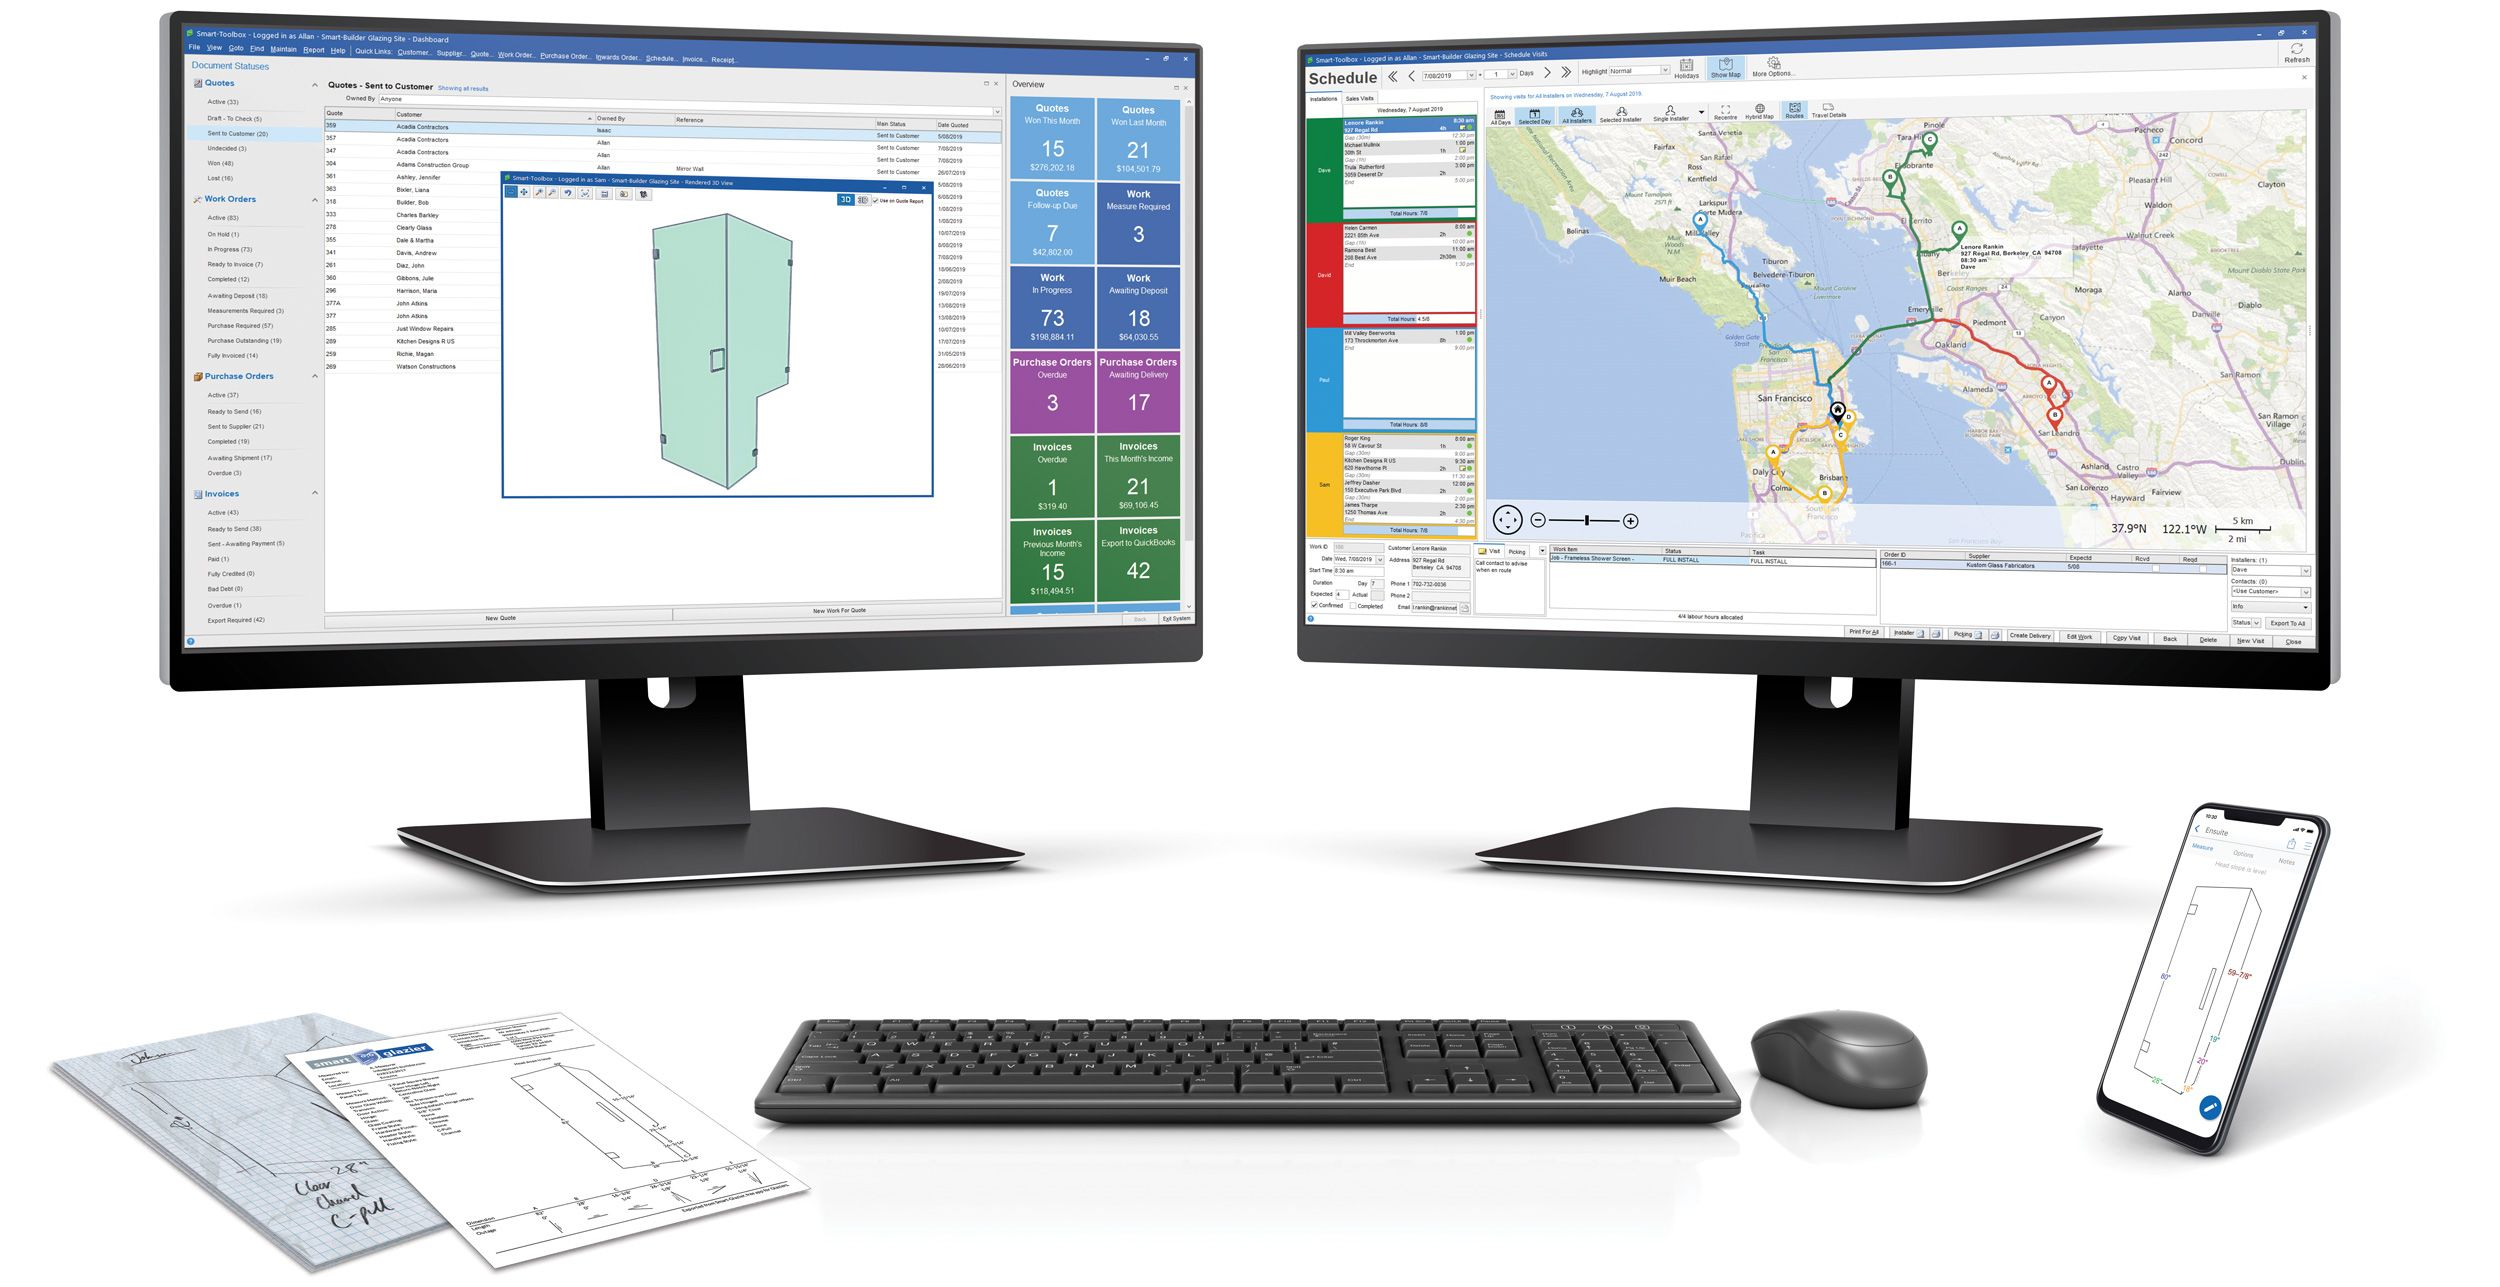 Glass shop management software - pricing that works the way you do